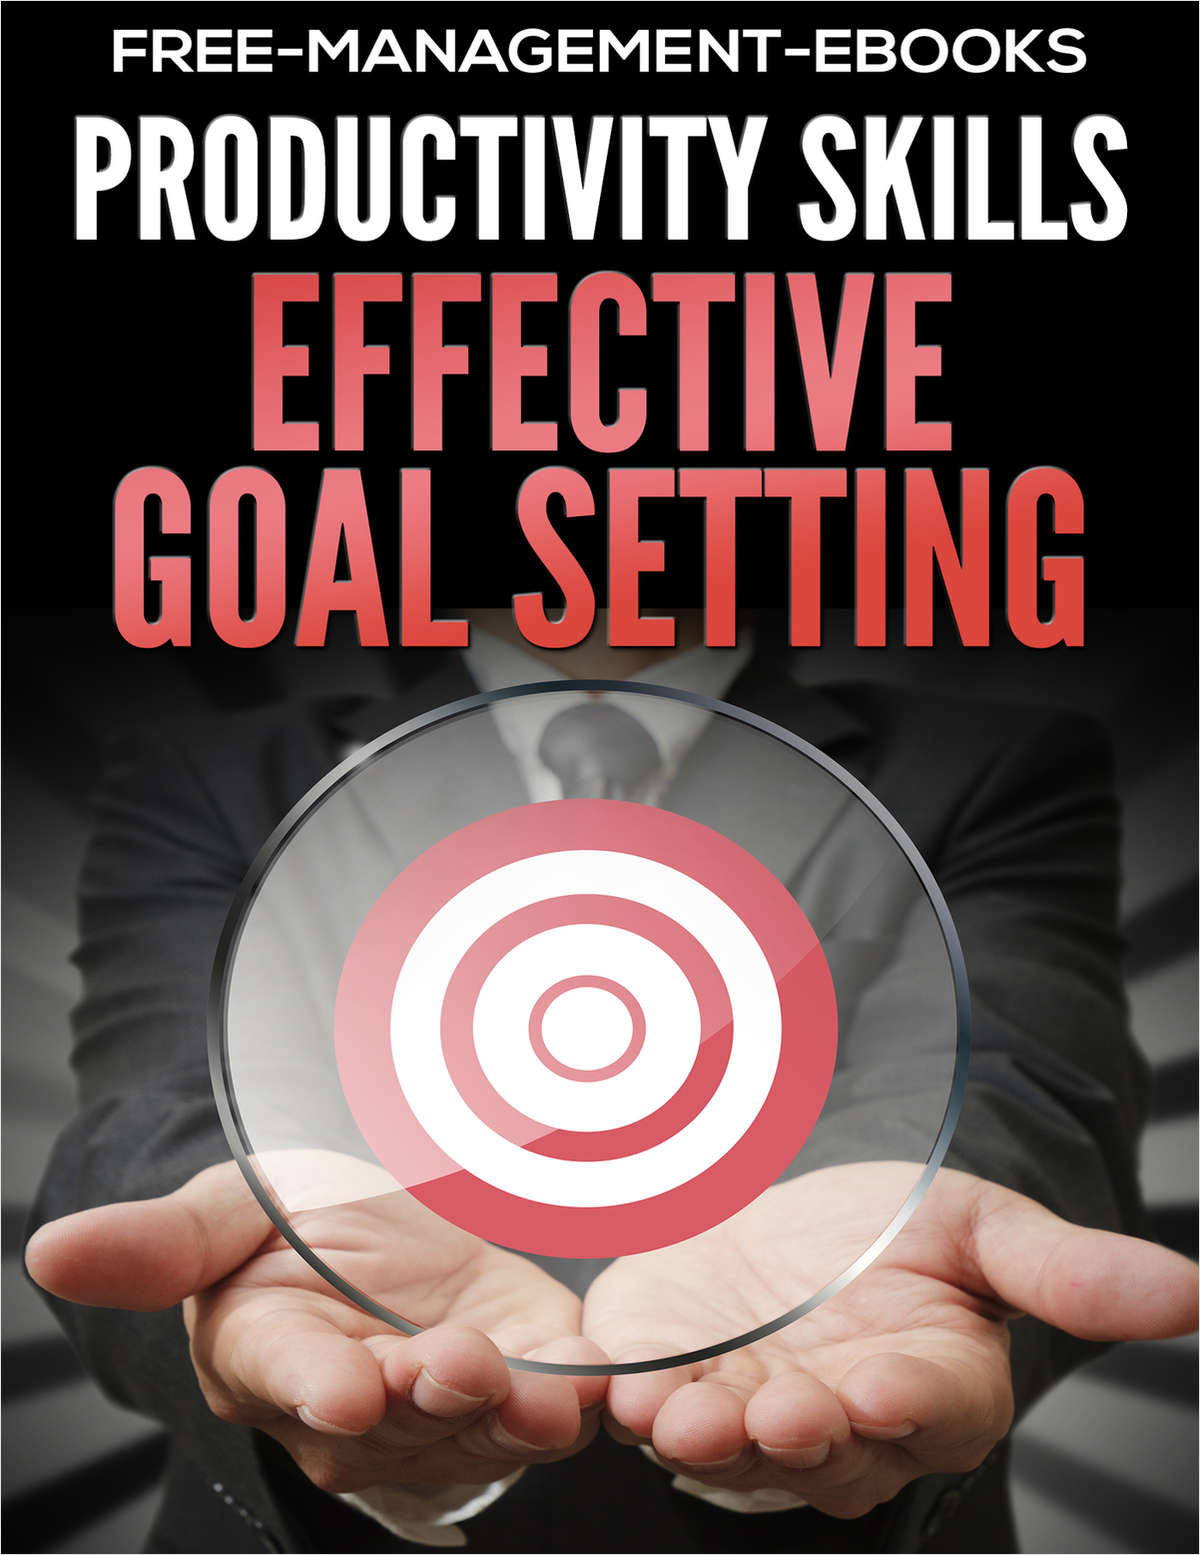 Effective Goal Setting - Developing Your Productivity Skills